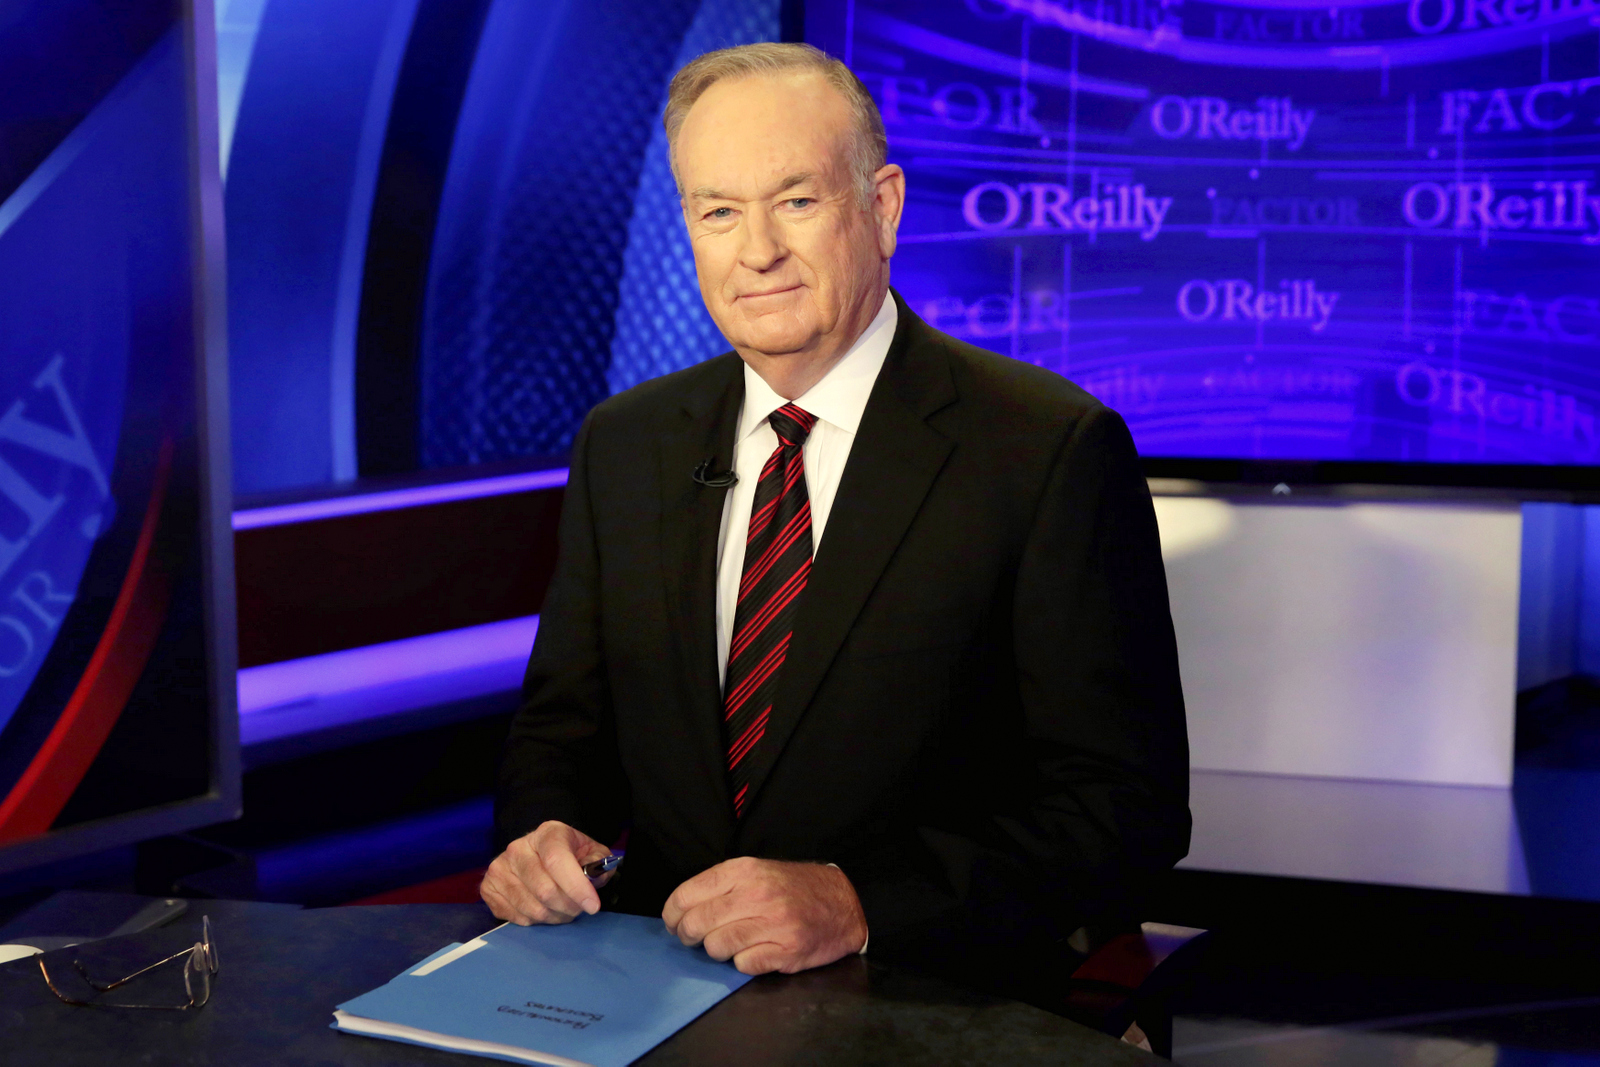 Mr. Family Values Bill O'Reilly Loses Custody of Kids After Allegedly Beating their Mother